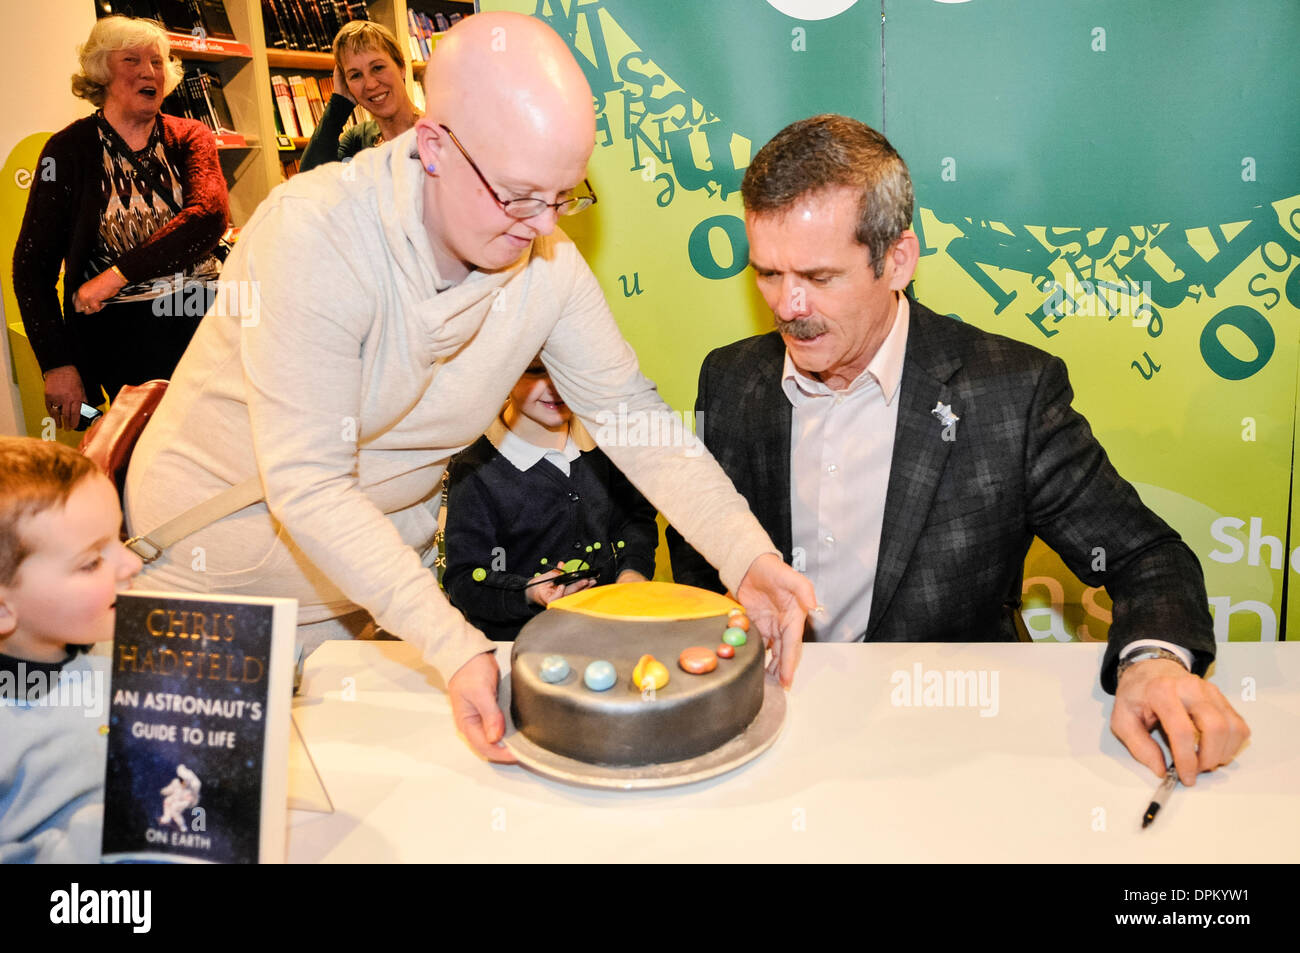 Belfast, Northern Ireland. 14 Jan 2014 -  Commander Chris Hadfield is presented with a 'Solar System Cake' as he signs copies of his book 'An Astronaut's Guide to Life on Earth' Credit:  Stephen Barnes/Alamy Live News - Stock Image